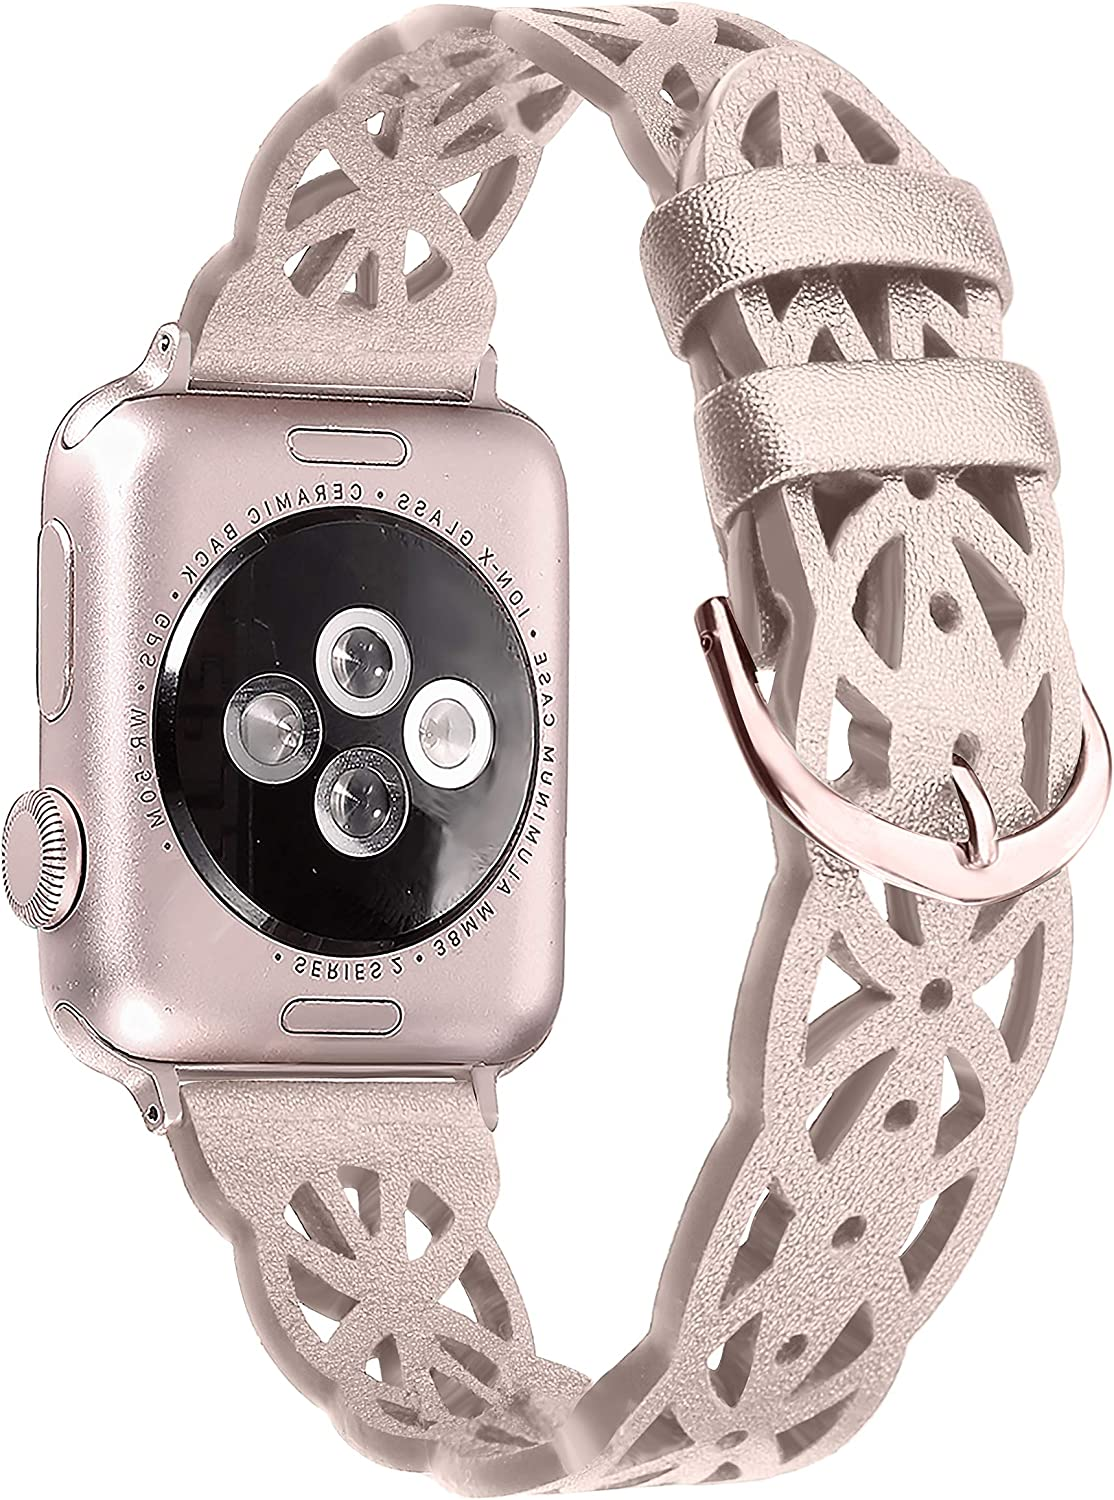 Secbolt Hollowed-Out Leather Band 42mm 44mm Compatible with Apple Watch Bands iWatch Series 6/SE/5/4/3/2/1, Elegant Top-Grain Leather Wristband Strap Accessories for Women, Rose Gold